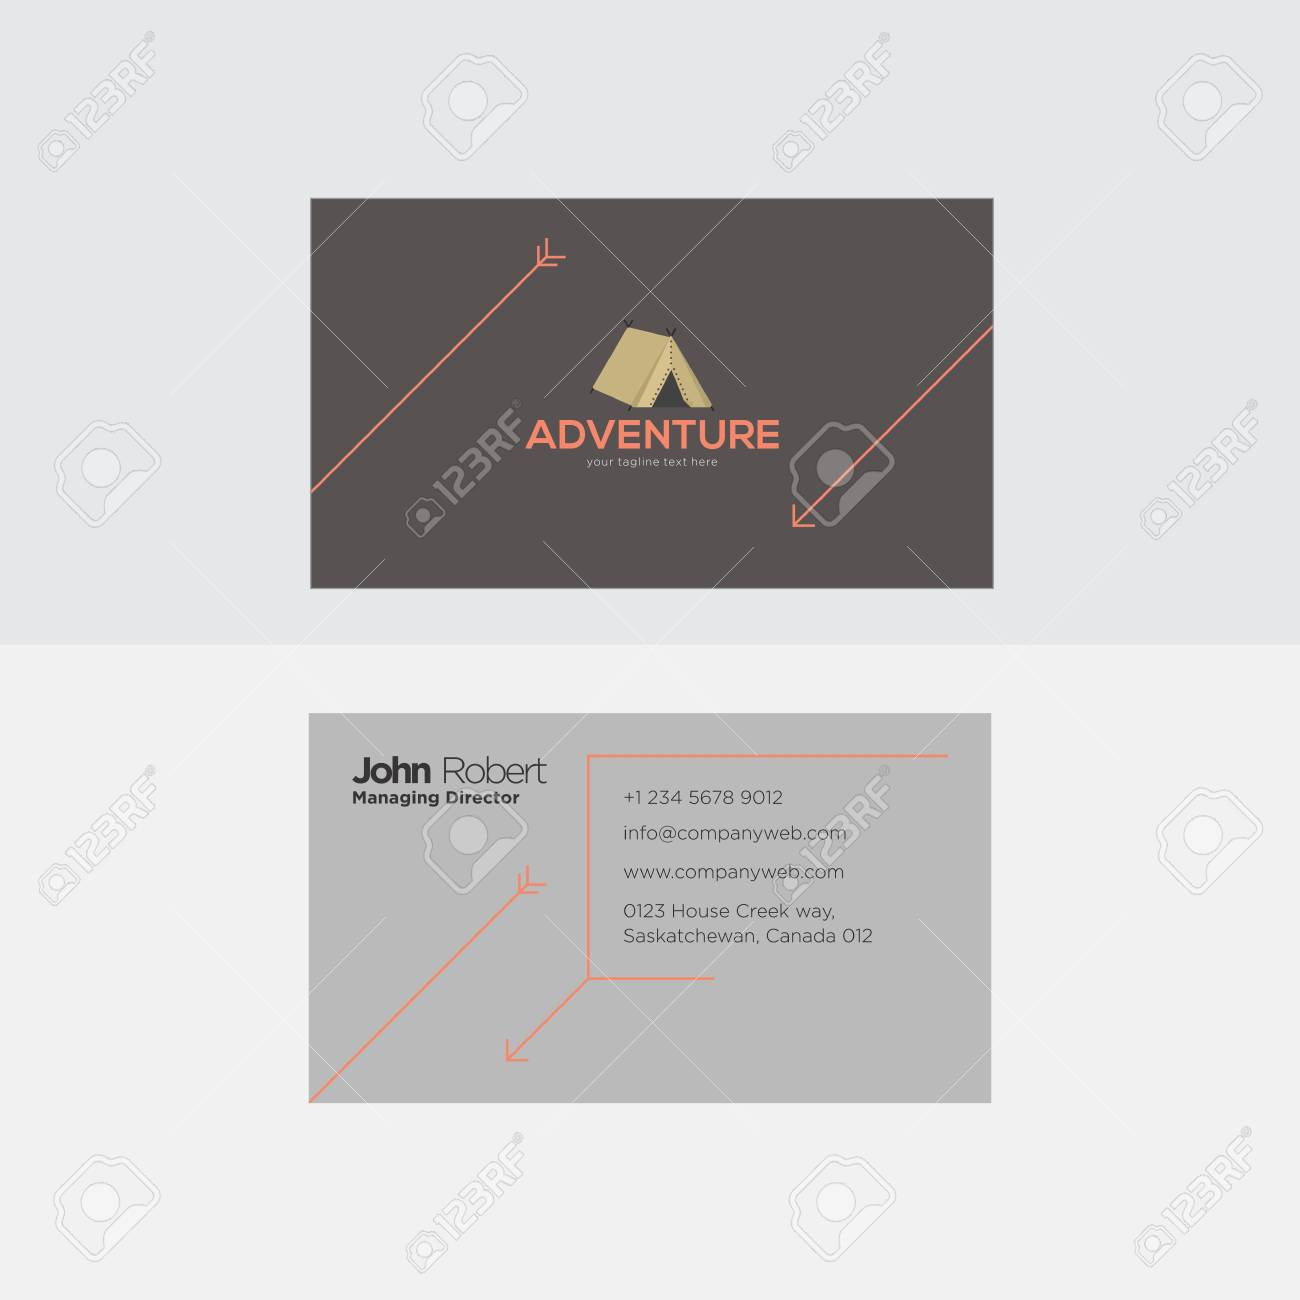 Abstract grey and orange business card royalty free cliparts abstract grey and orange business card banco de imagens 98317751 reheart Choice Image